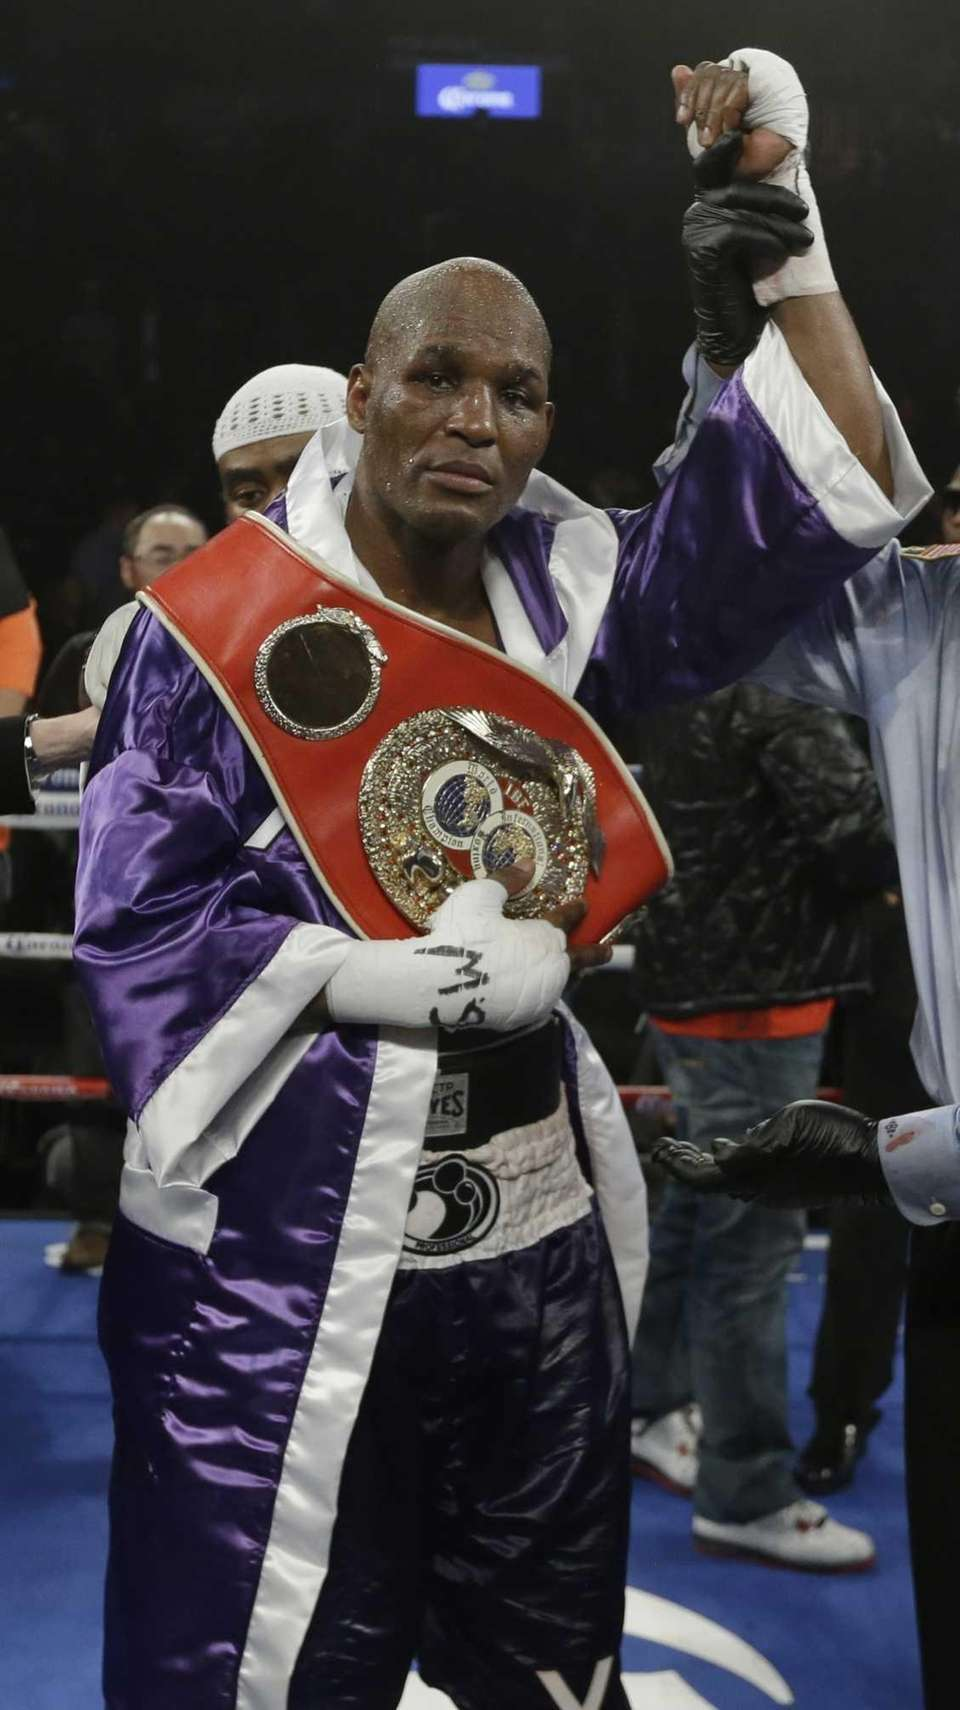 Bernard Hopkins poses for photographs after an IBF